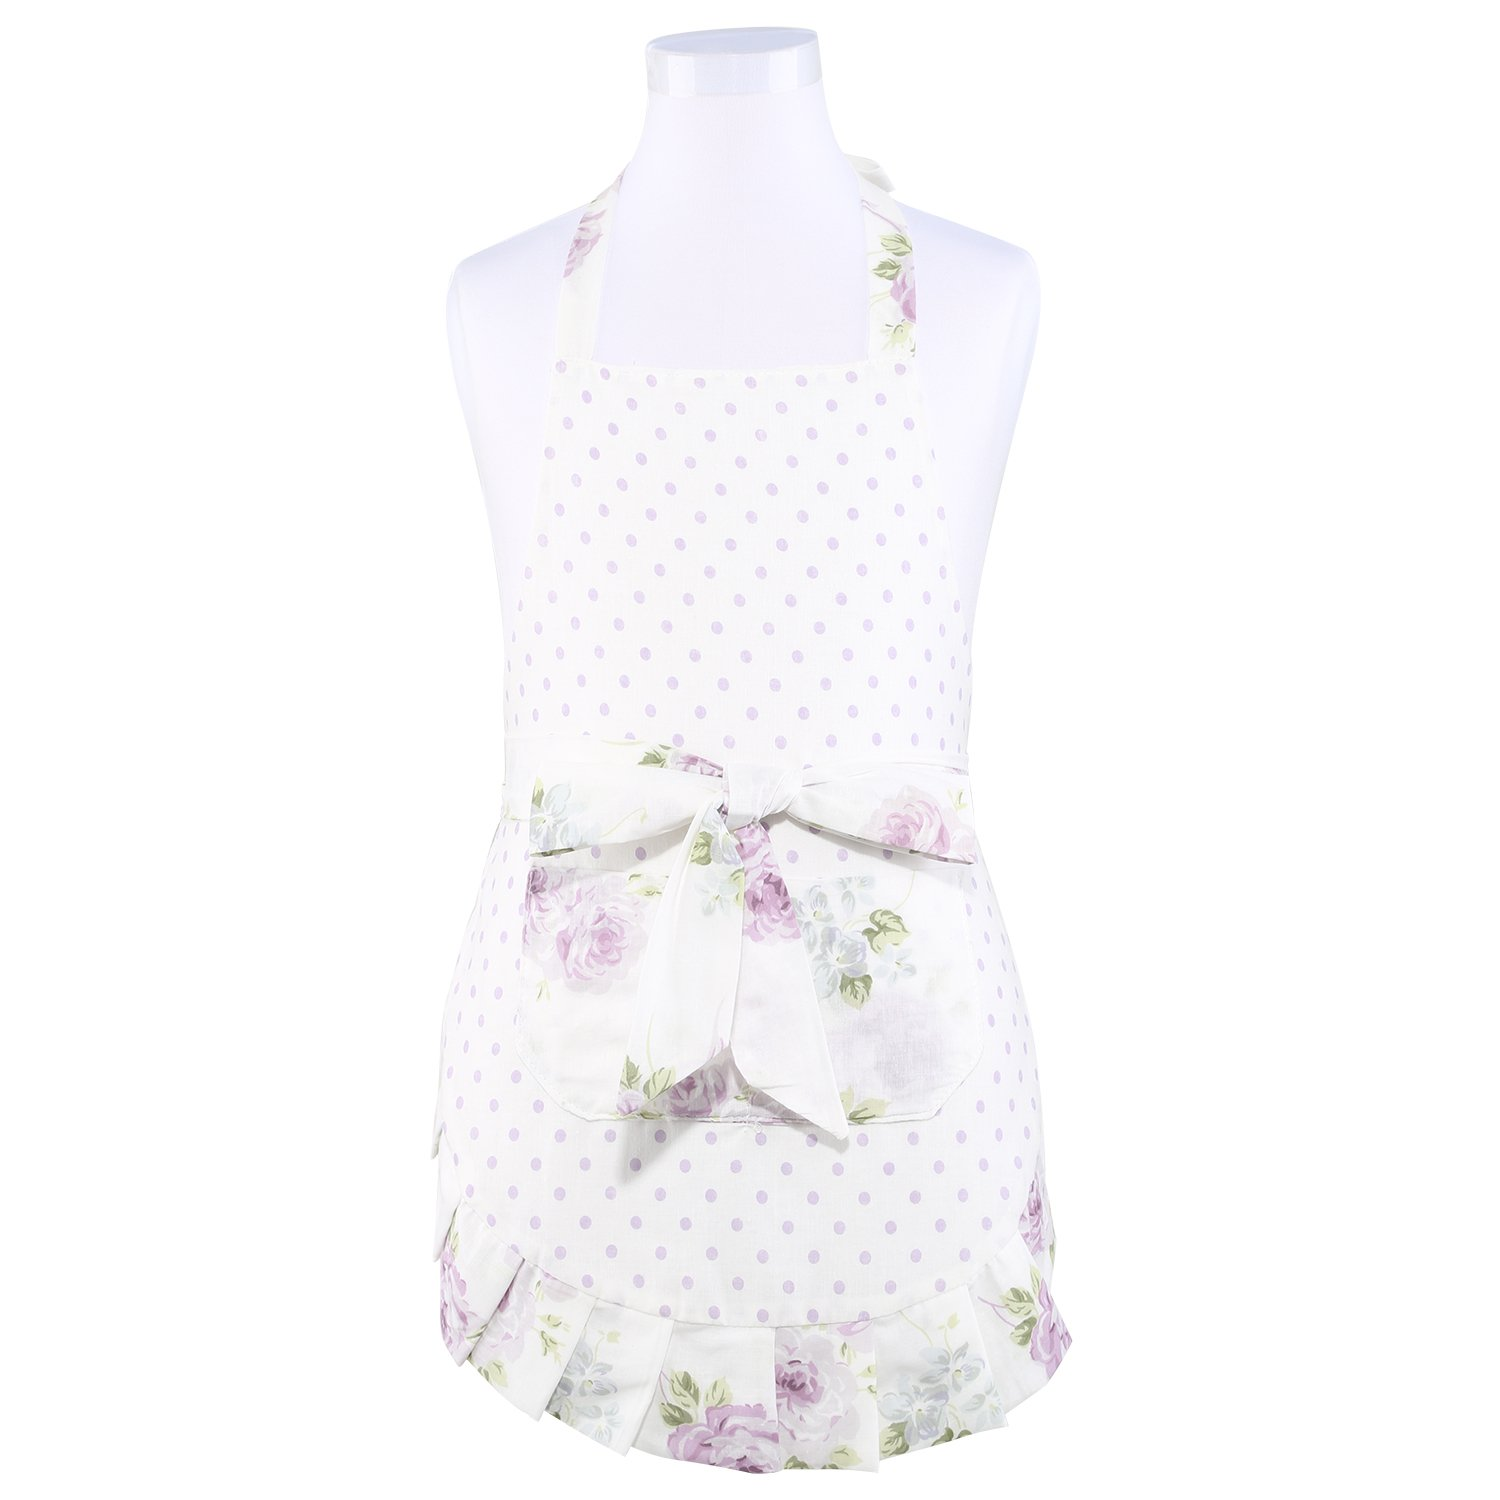 Neoviva Cotton Garden Child Apron with Big Pocket and Ruffles, Lining Applied, Style Little Kathy, Floral Lilac Snow Polka Dot